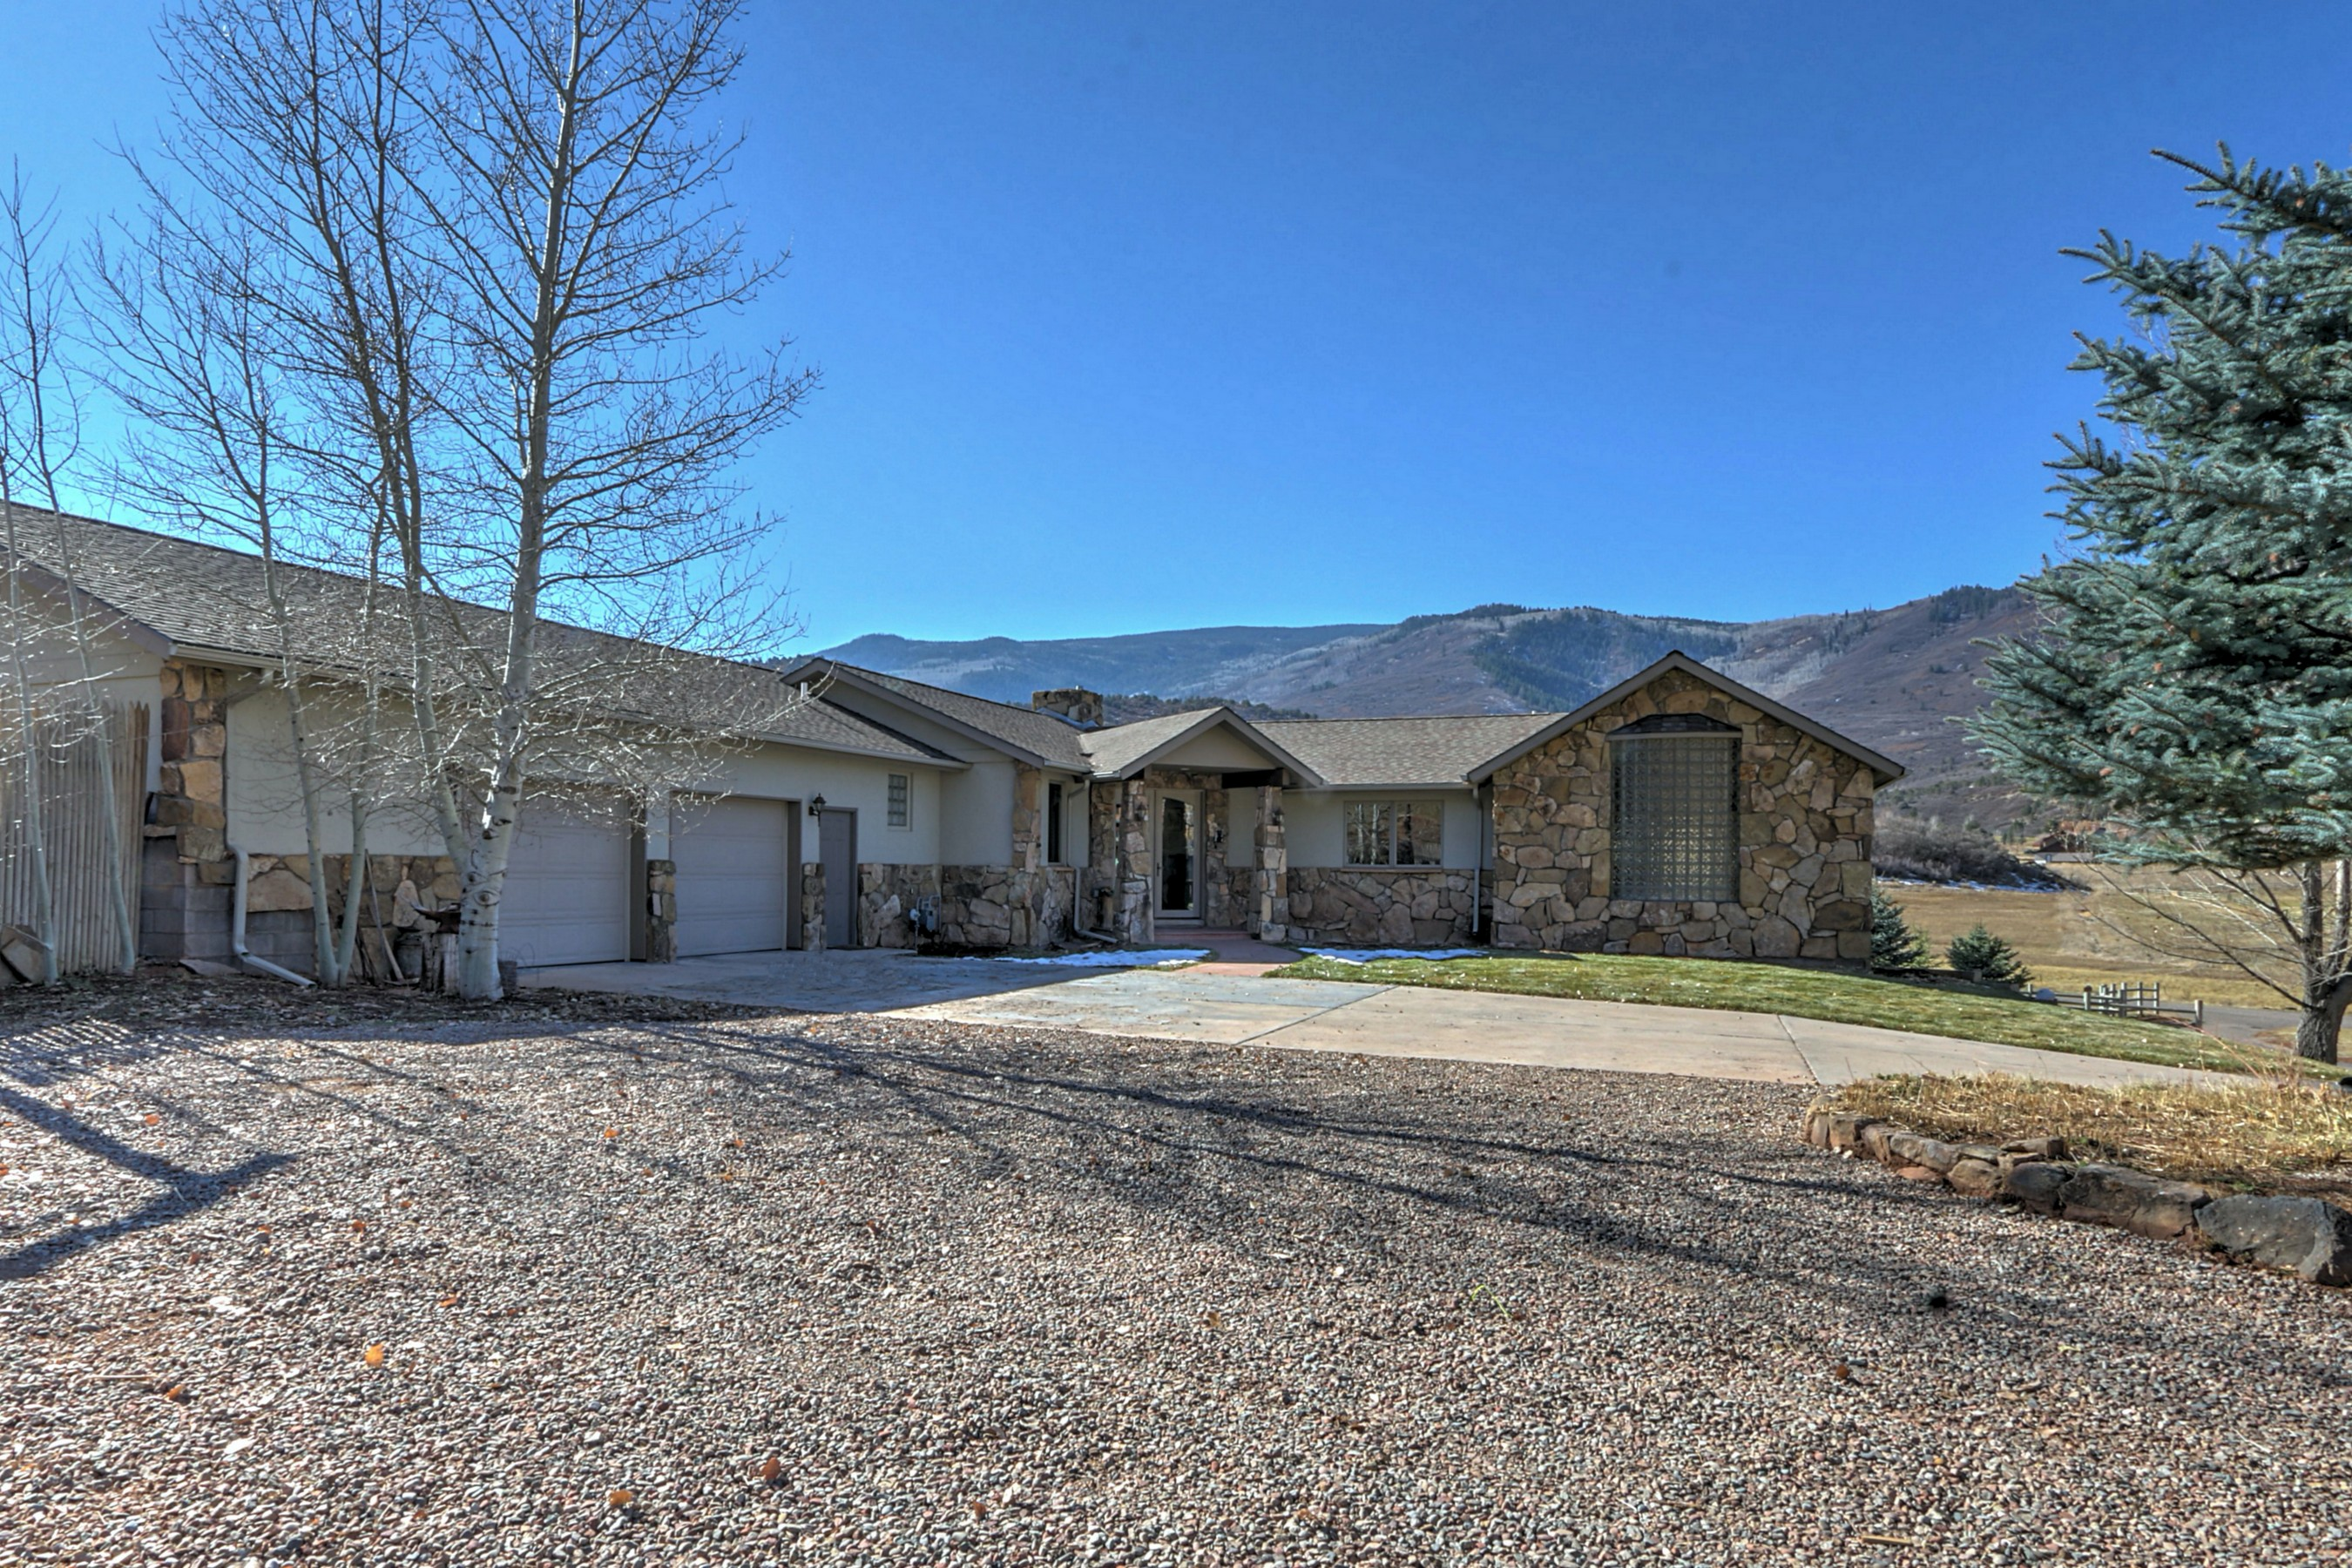 50 Deer Valley Drive Glenwood Springs Photo 1